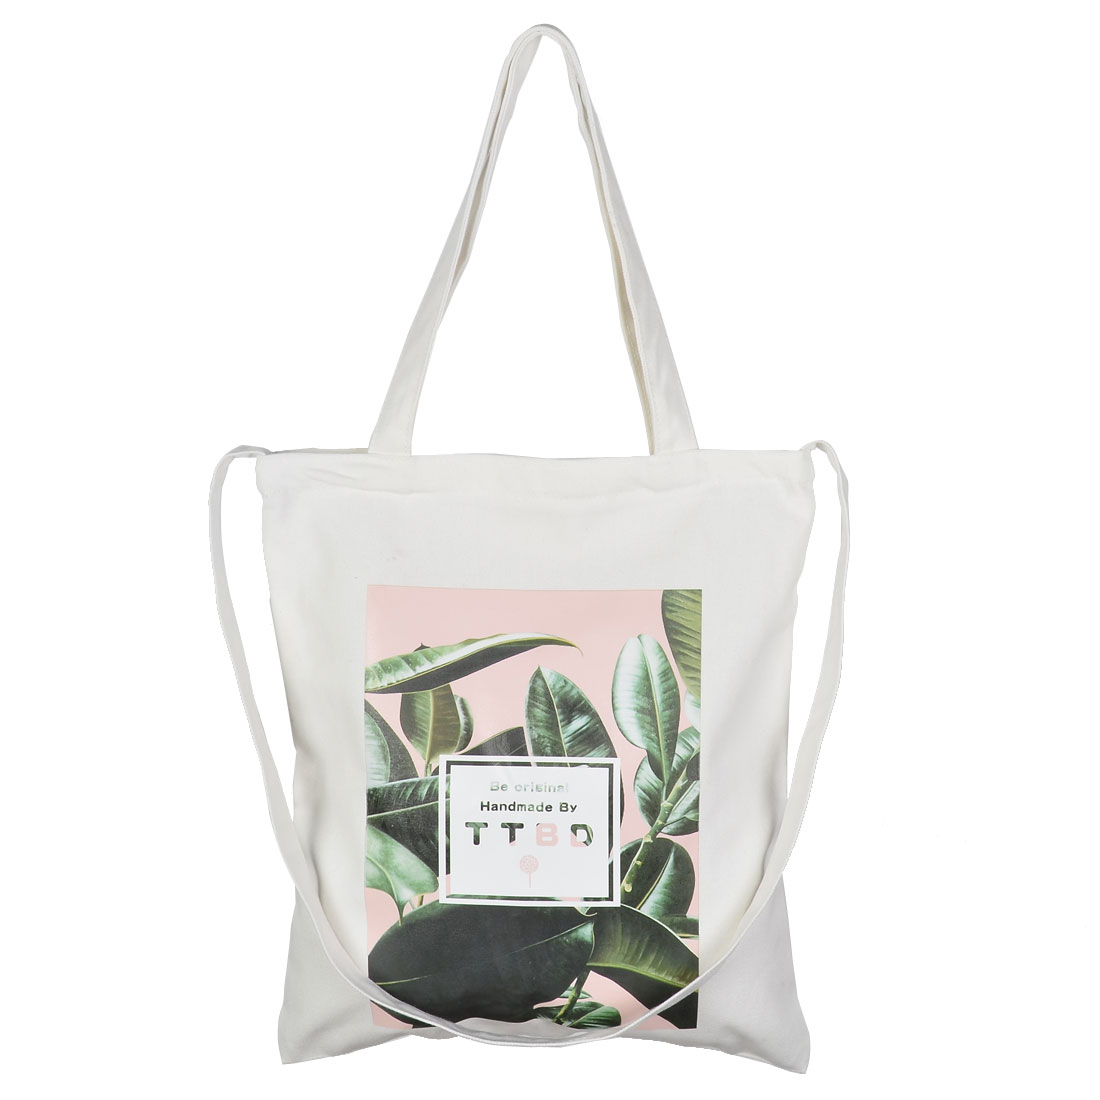 Travel Canvas Leaf Pattern Sundries Cosmetic Toothpaste Holder Tote Bag White - image 4 of 4